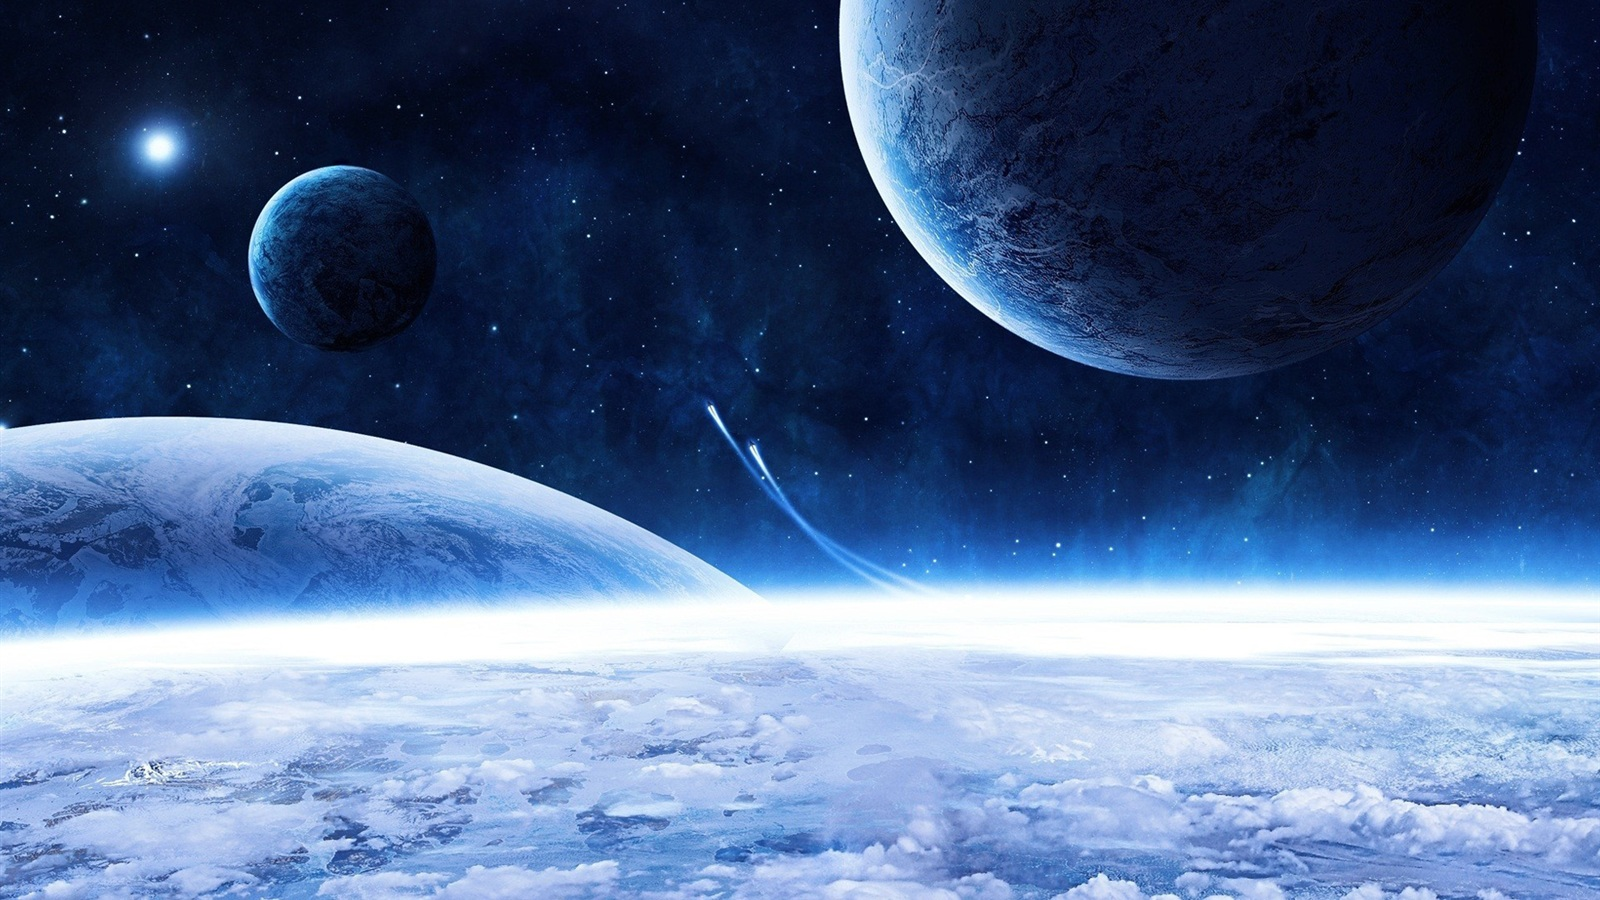 space wallpapers 1600x900 - photo #9